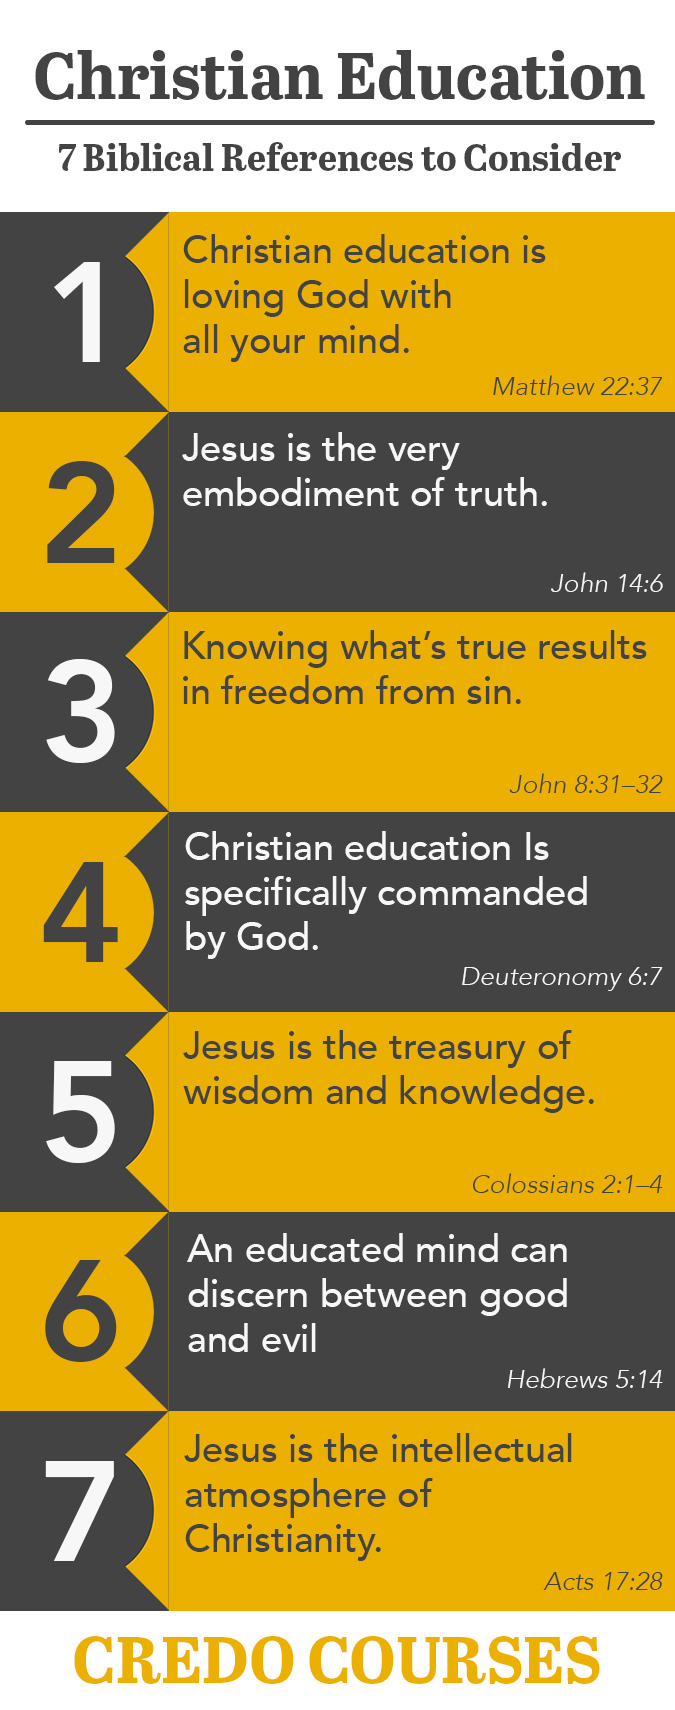 Christian Education: 7 Biblical References to Consider (Infographic)